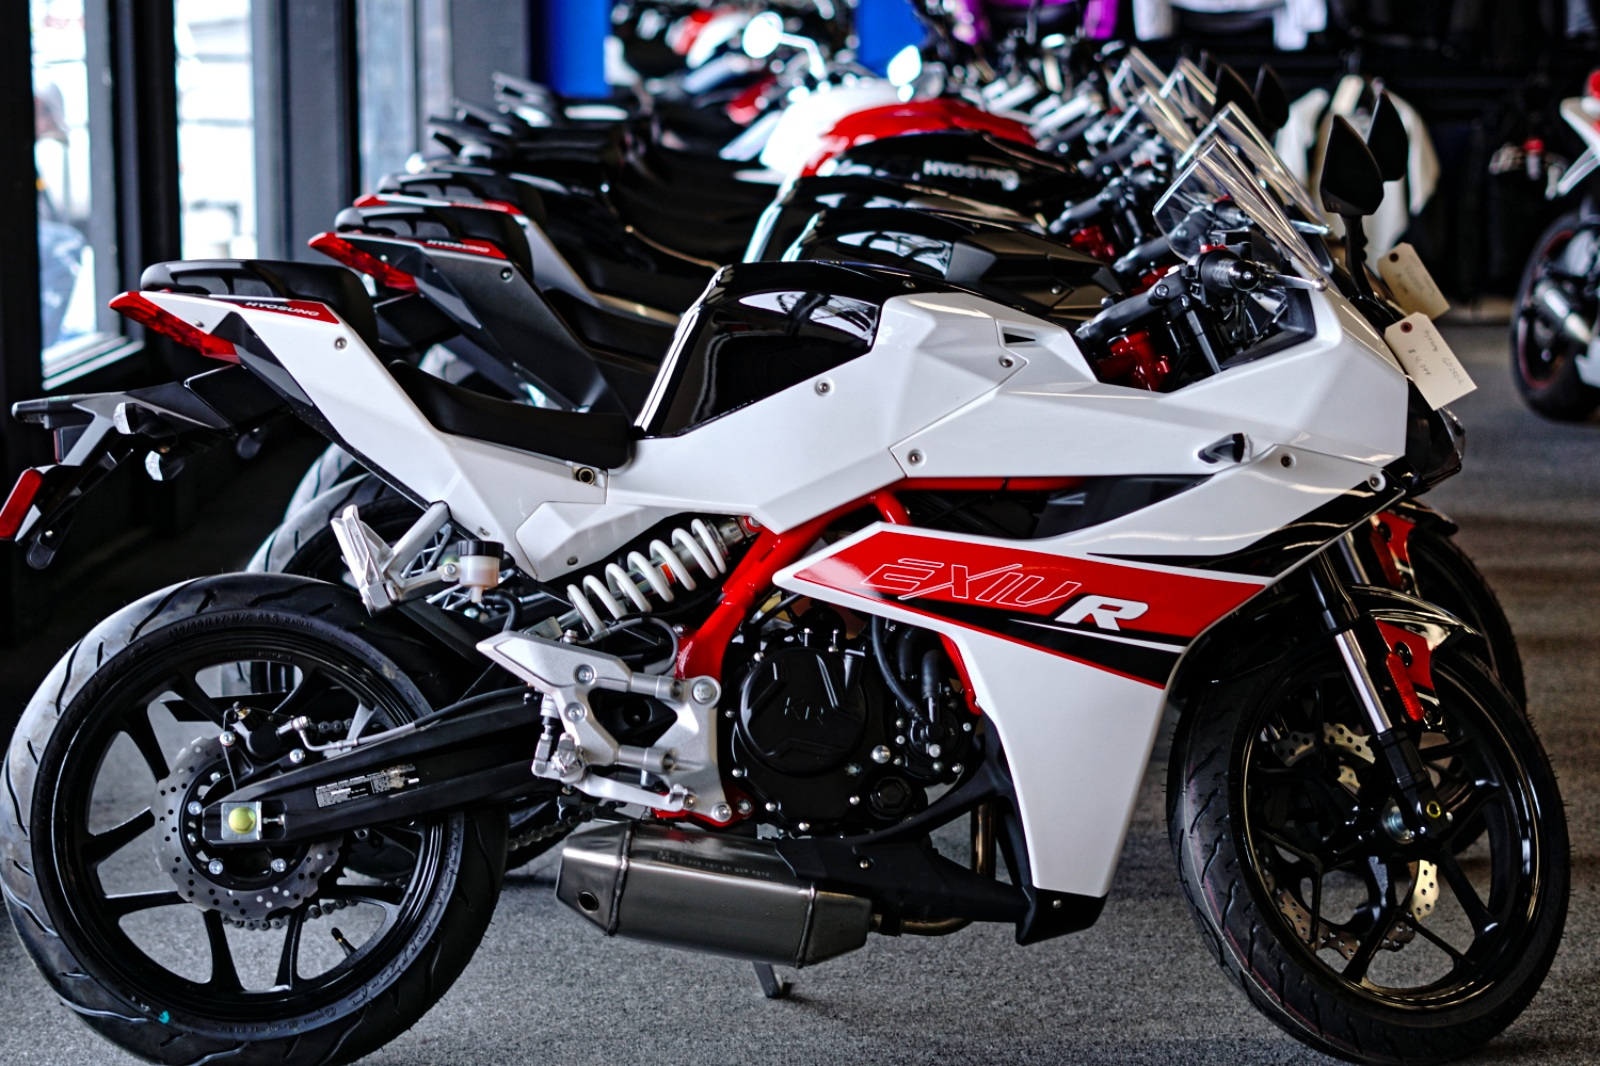 Motorcycles Street Bikes from Hyosung